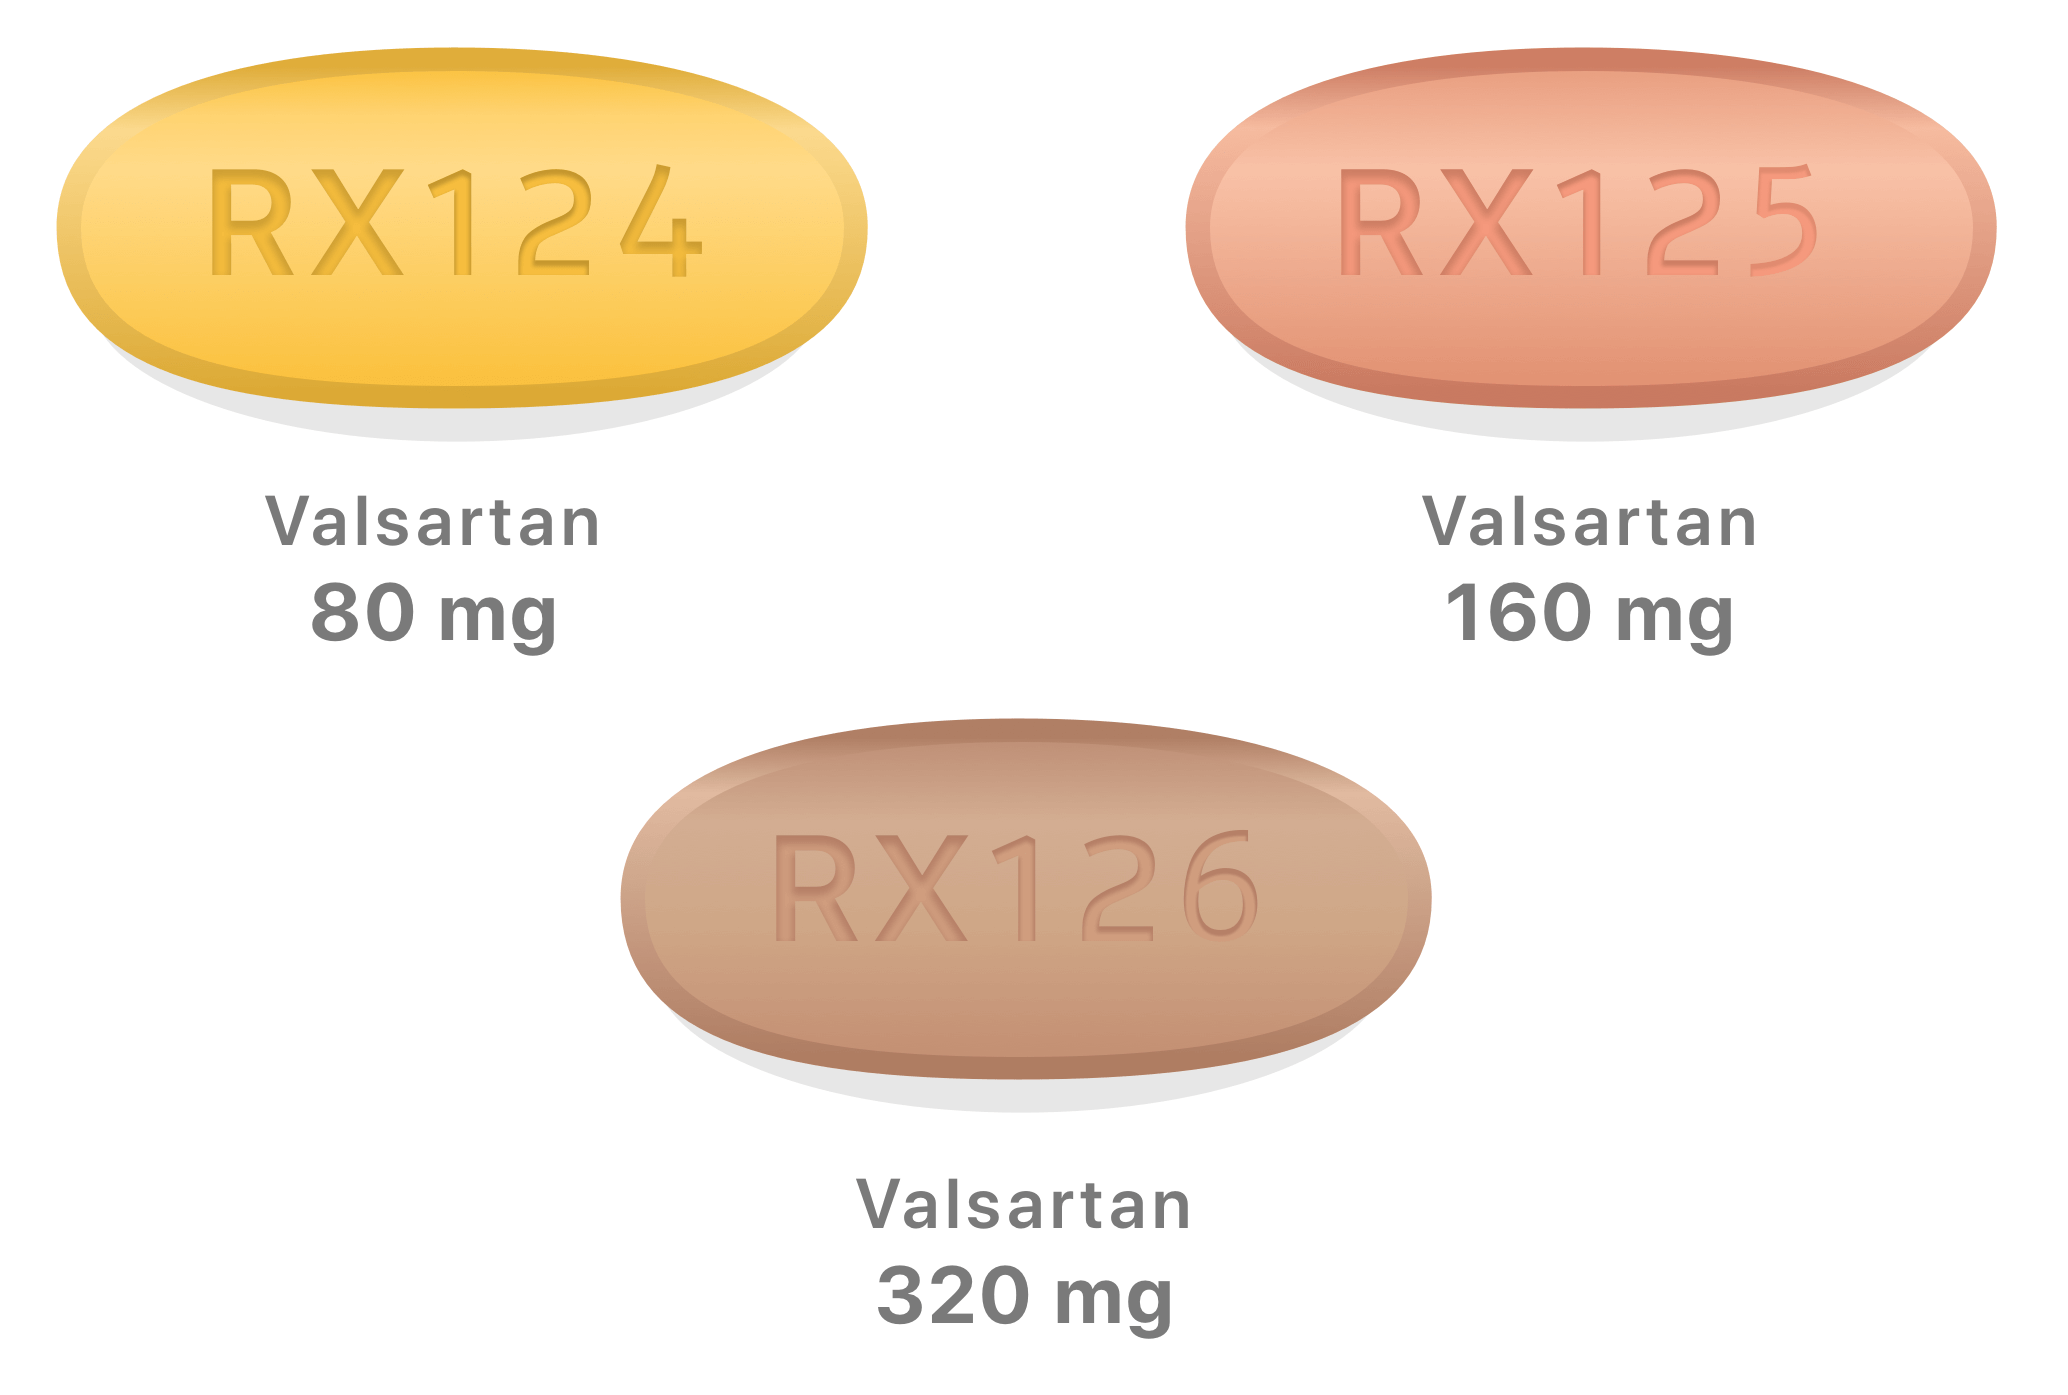 Valsartan tablet dosage